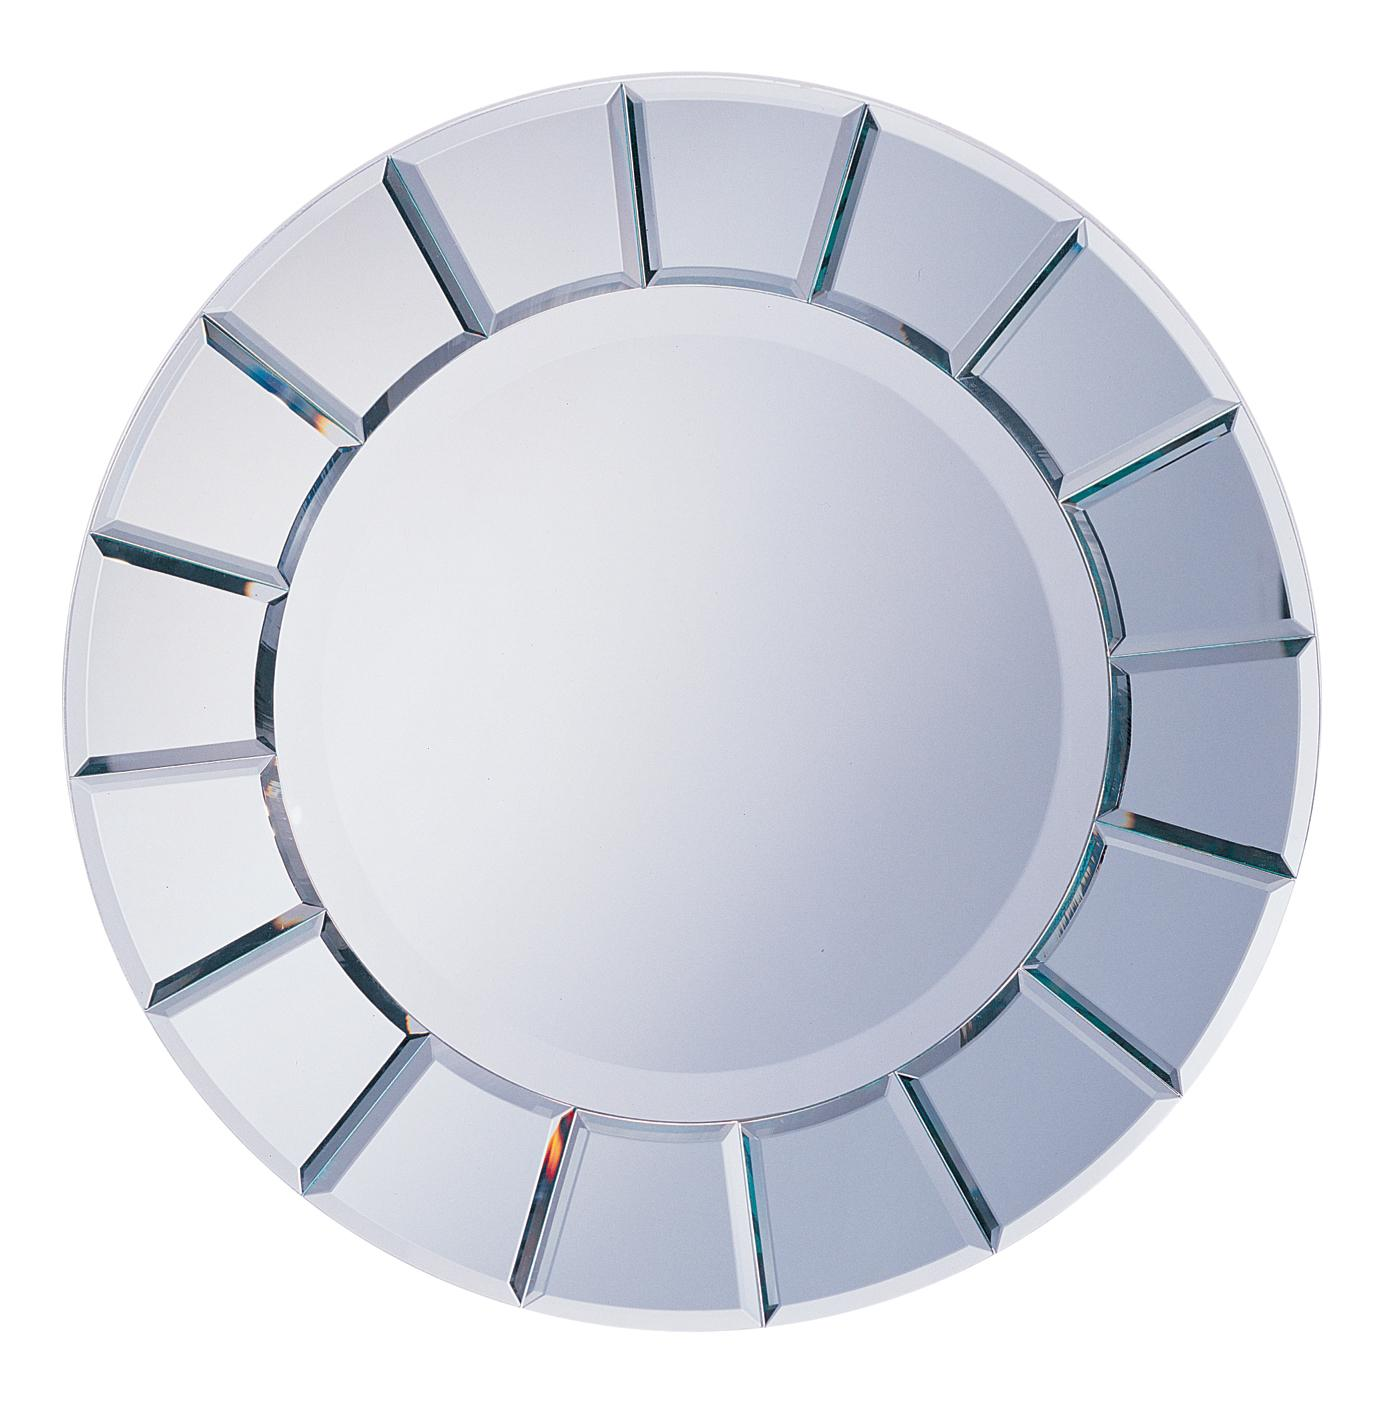 Coaster Accent Mirrors Mirror - Item Number: 8637